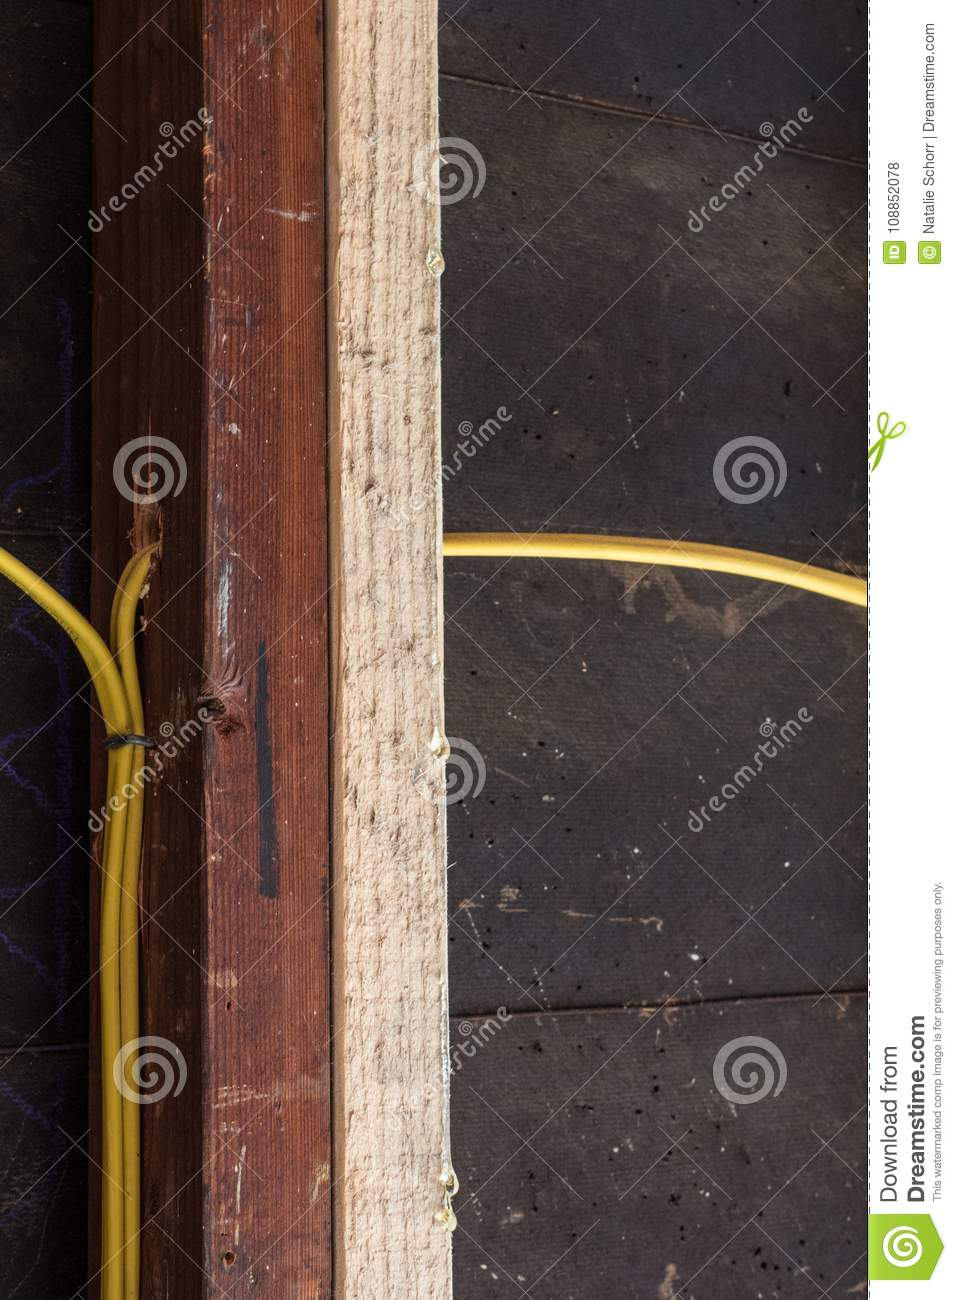 Construction renovation detail of old wall stud and new sistered stud with  yellow electrical wiring and